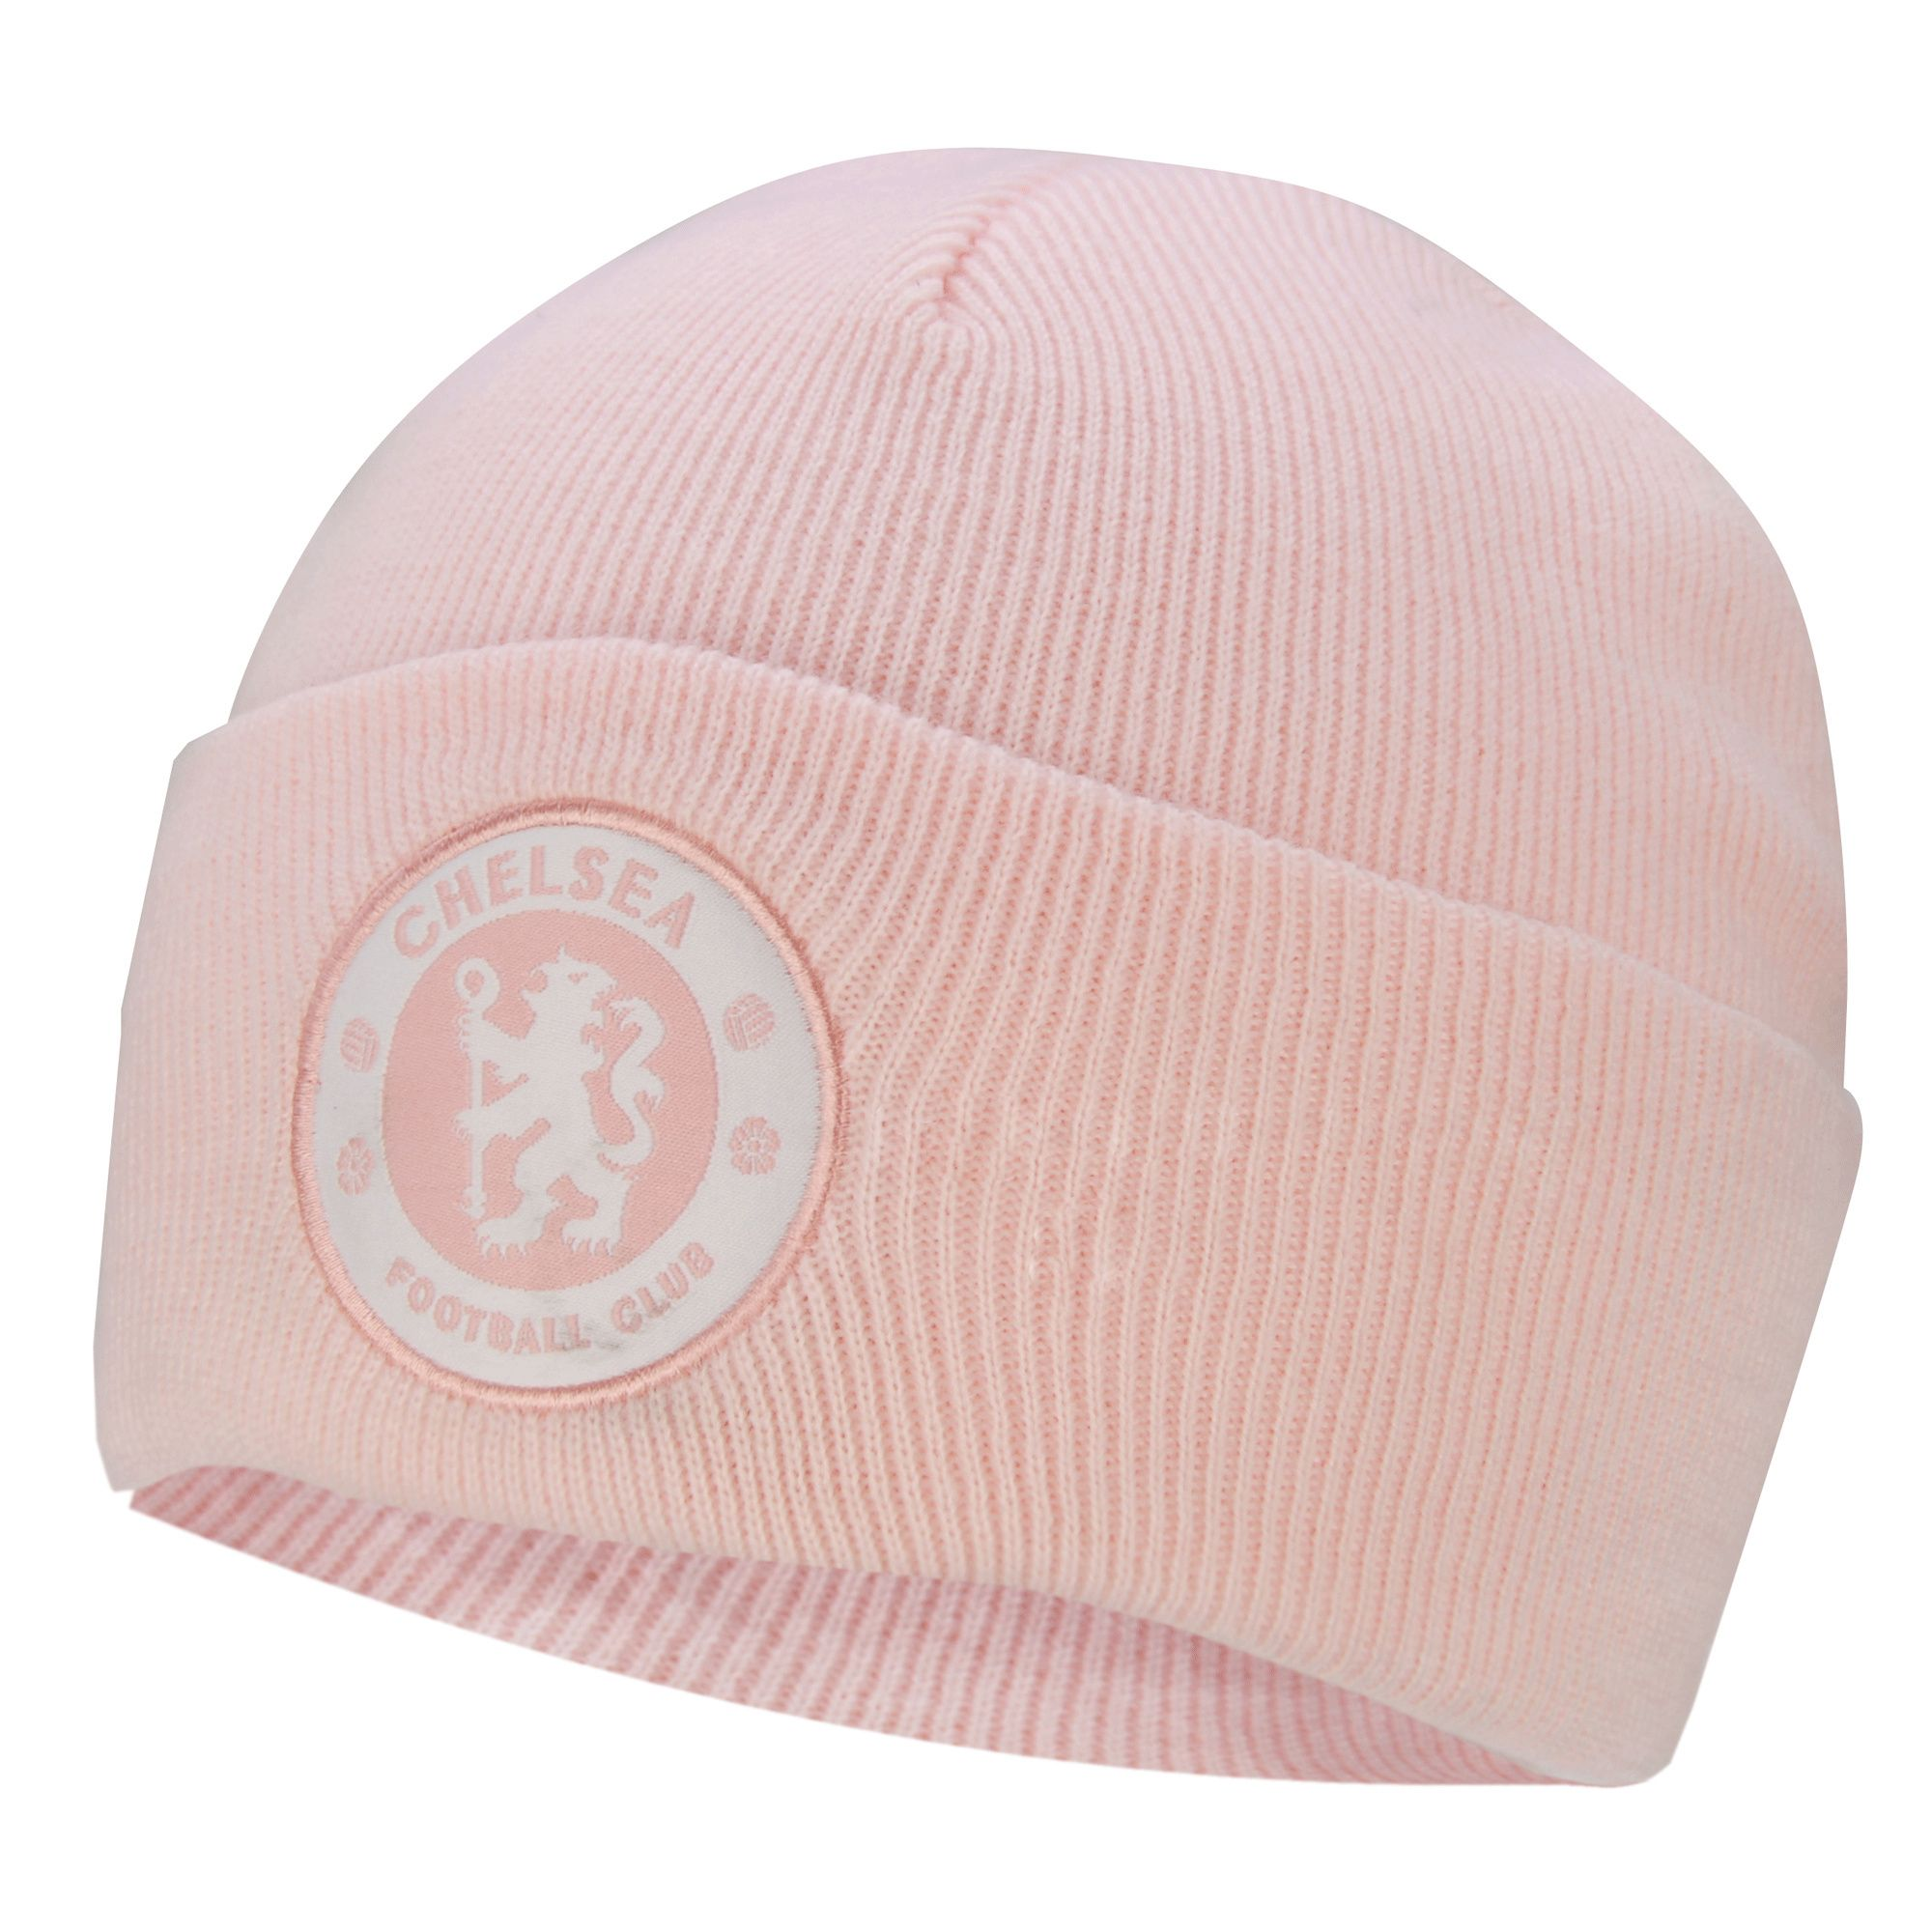 Official Team Chelsea Knitted Hat